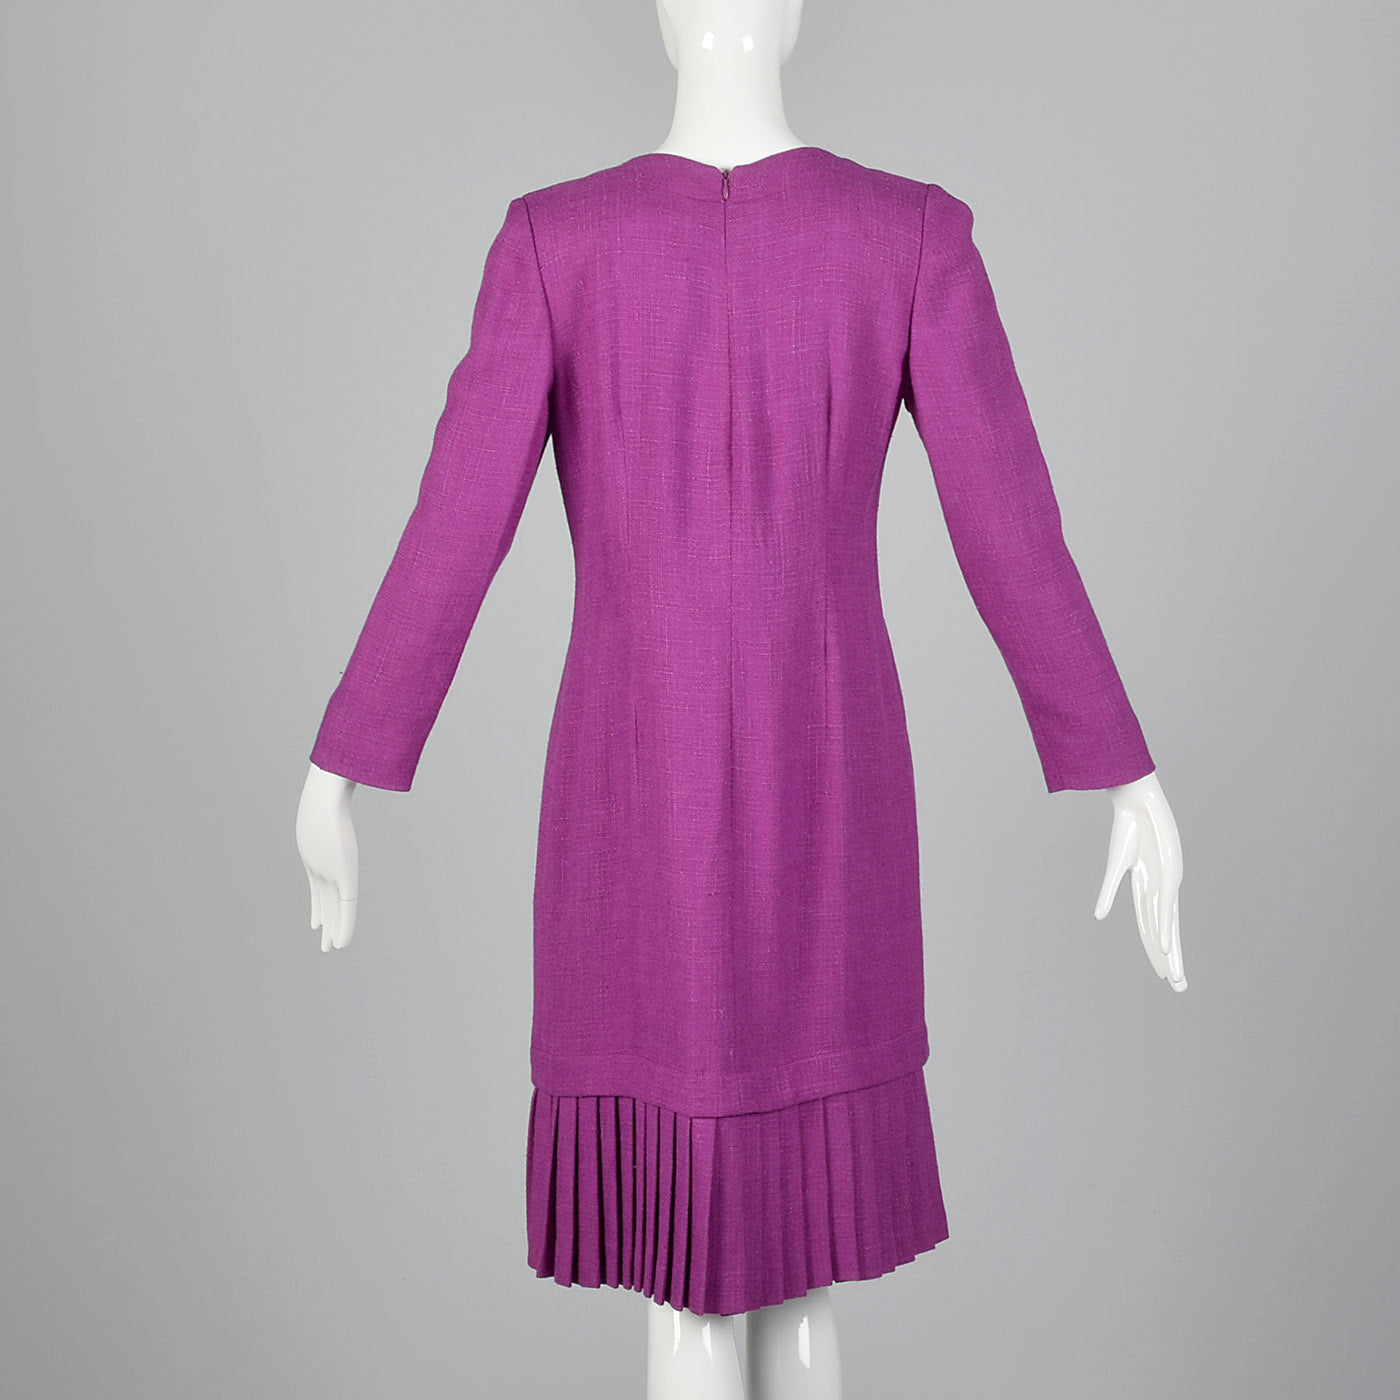 1980s Carolina Herrera Purple Dress